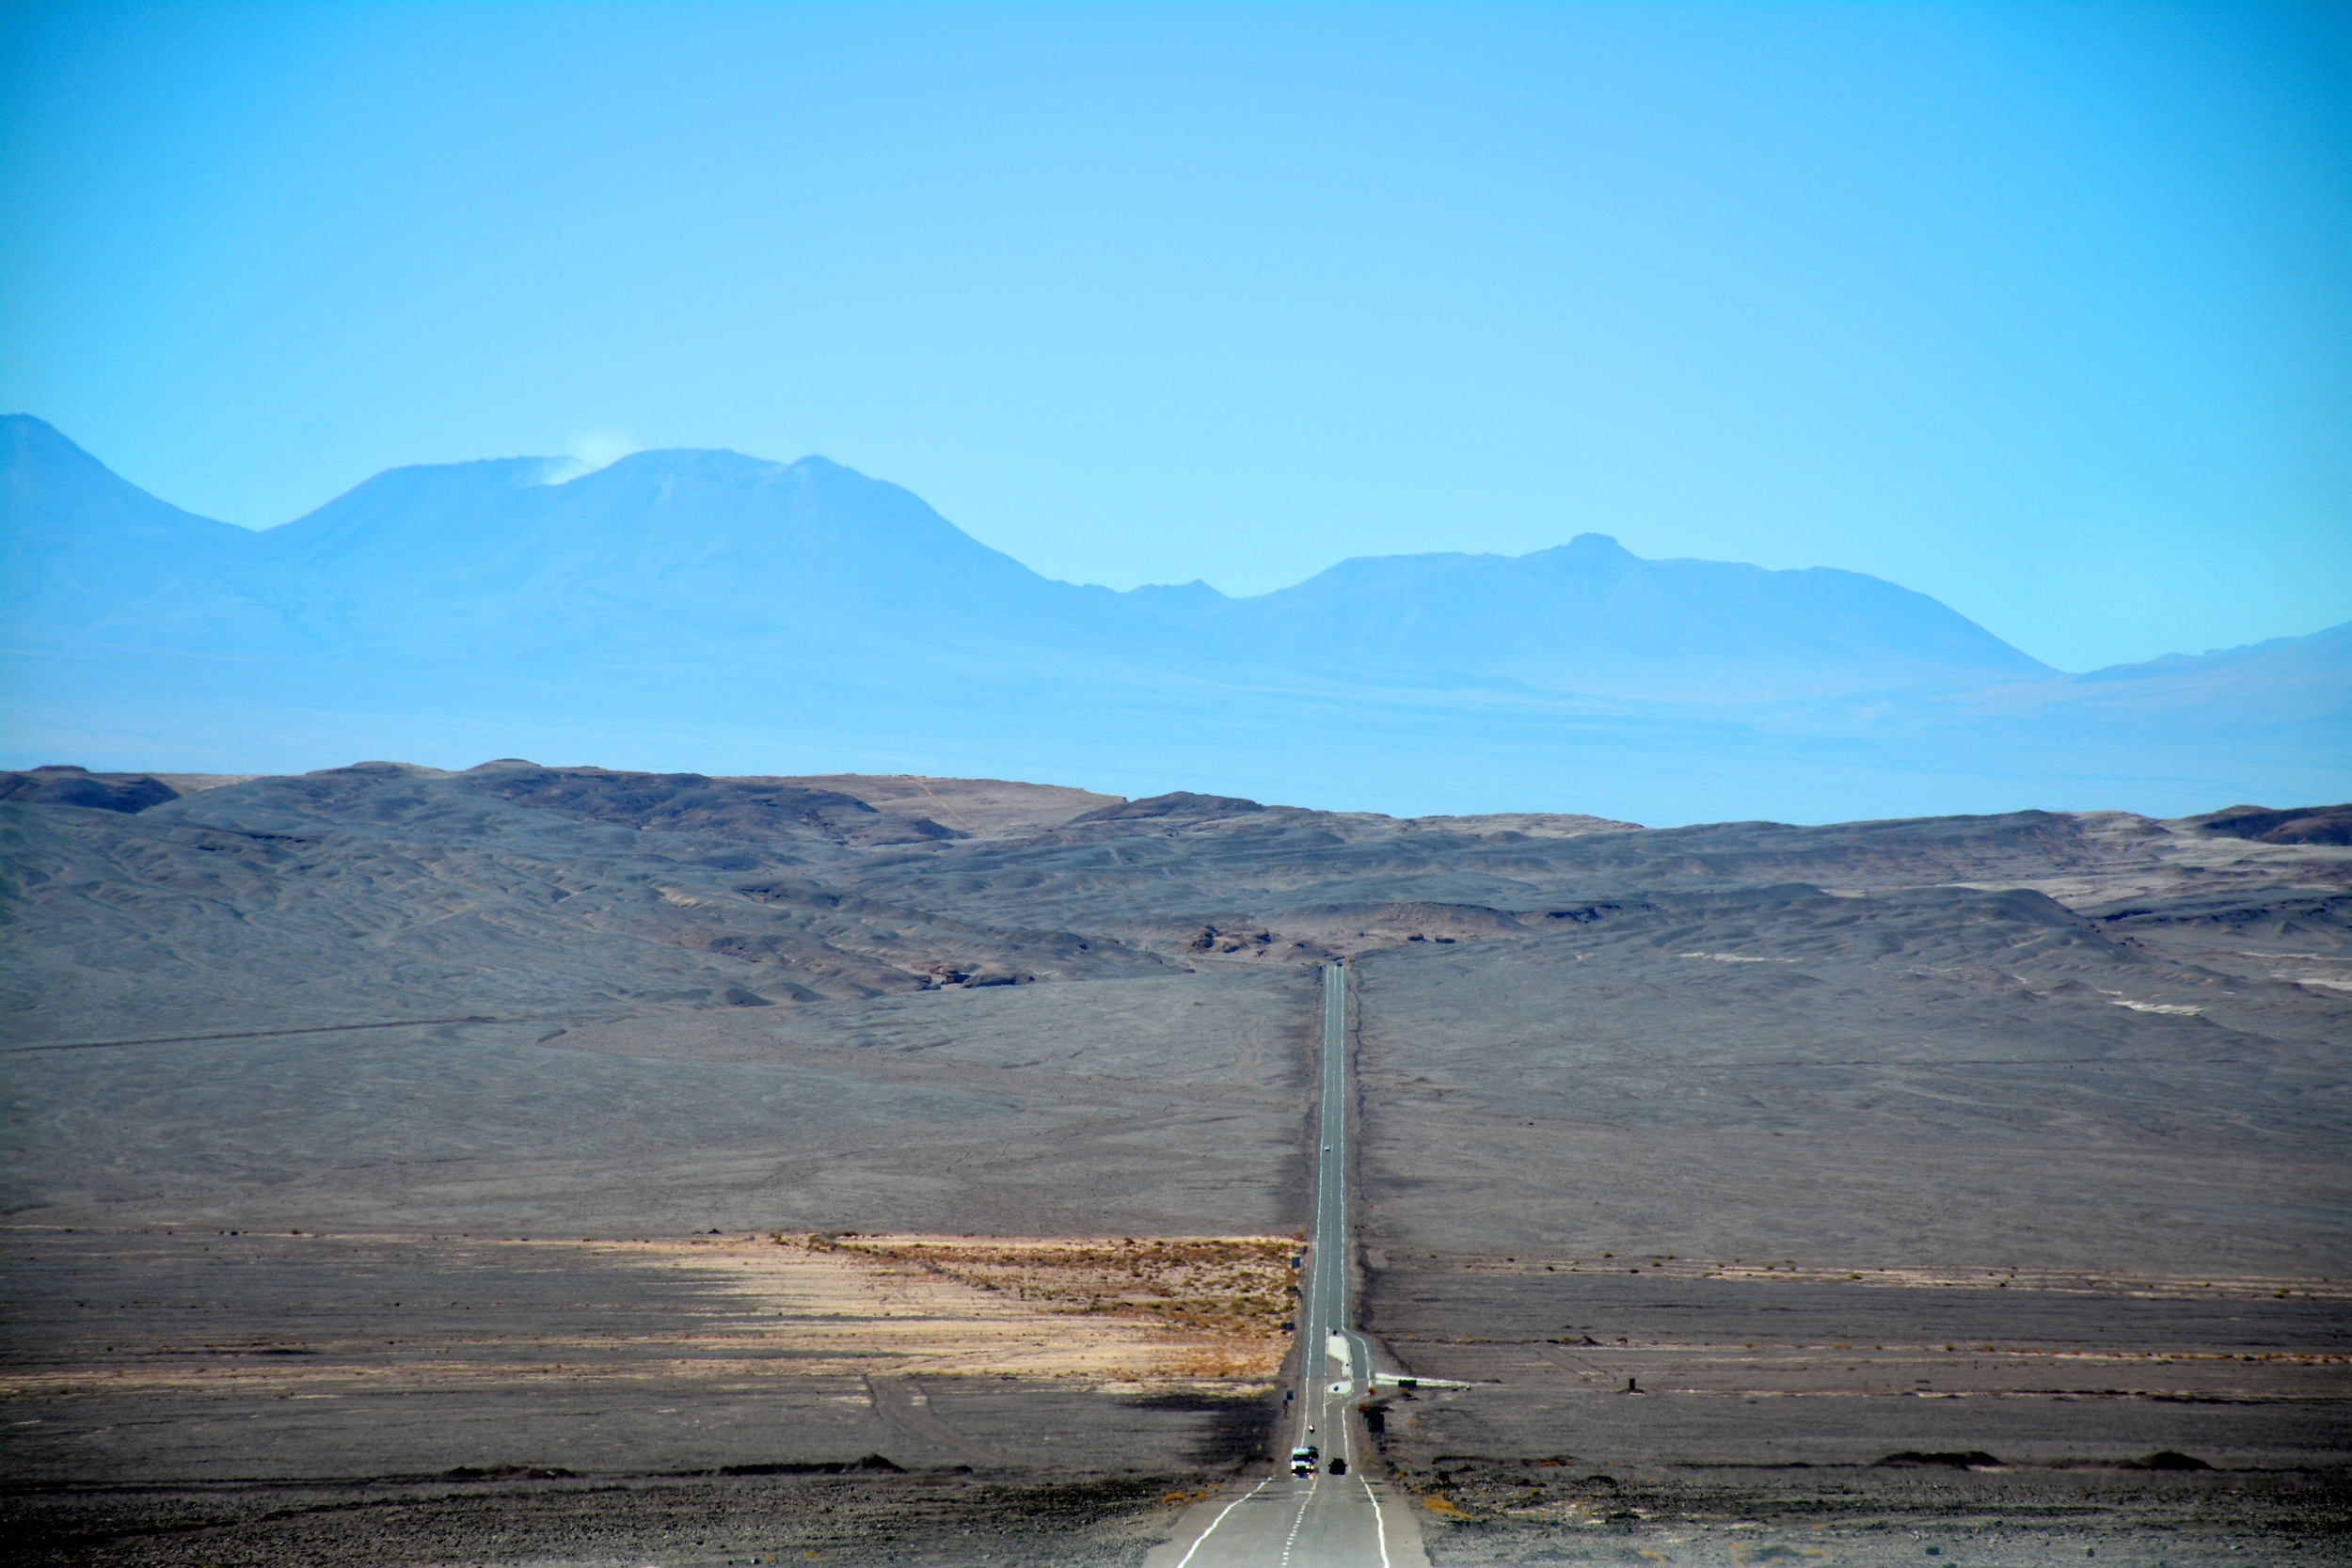 The road from Calama to San Pedro de Atacama